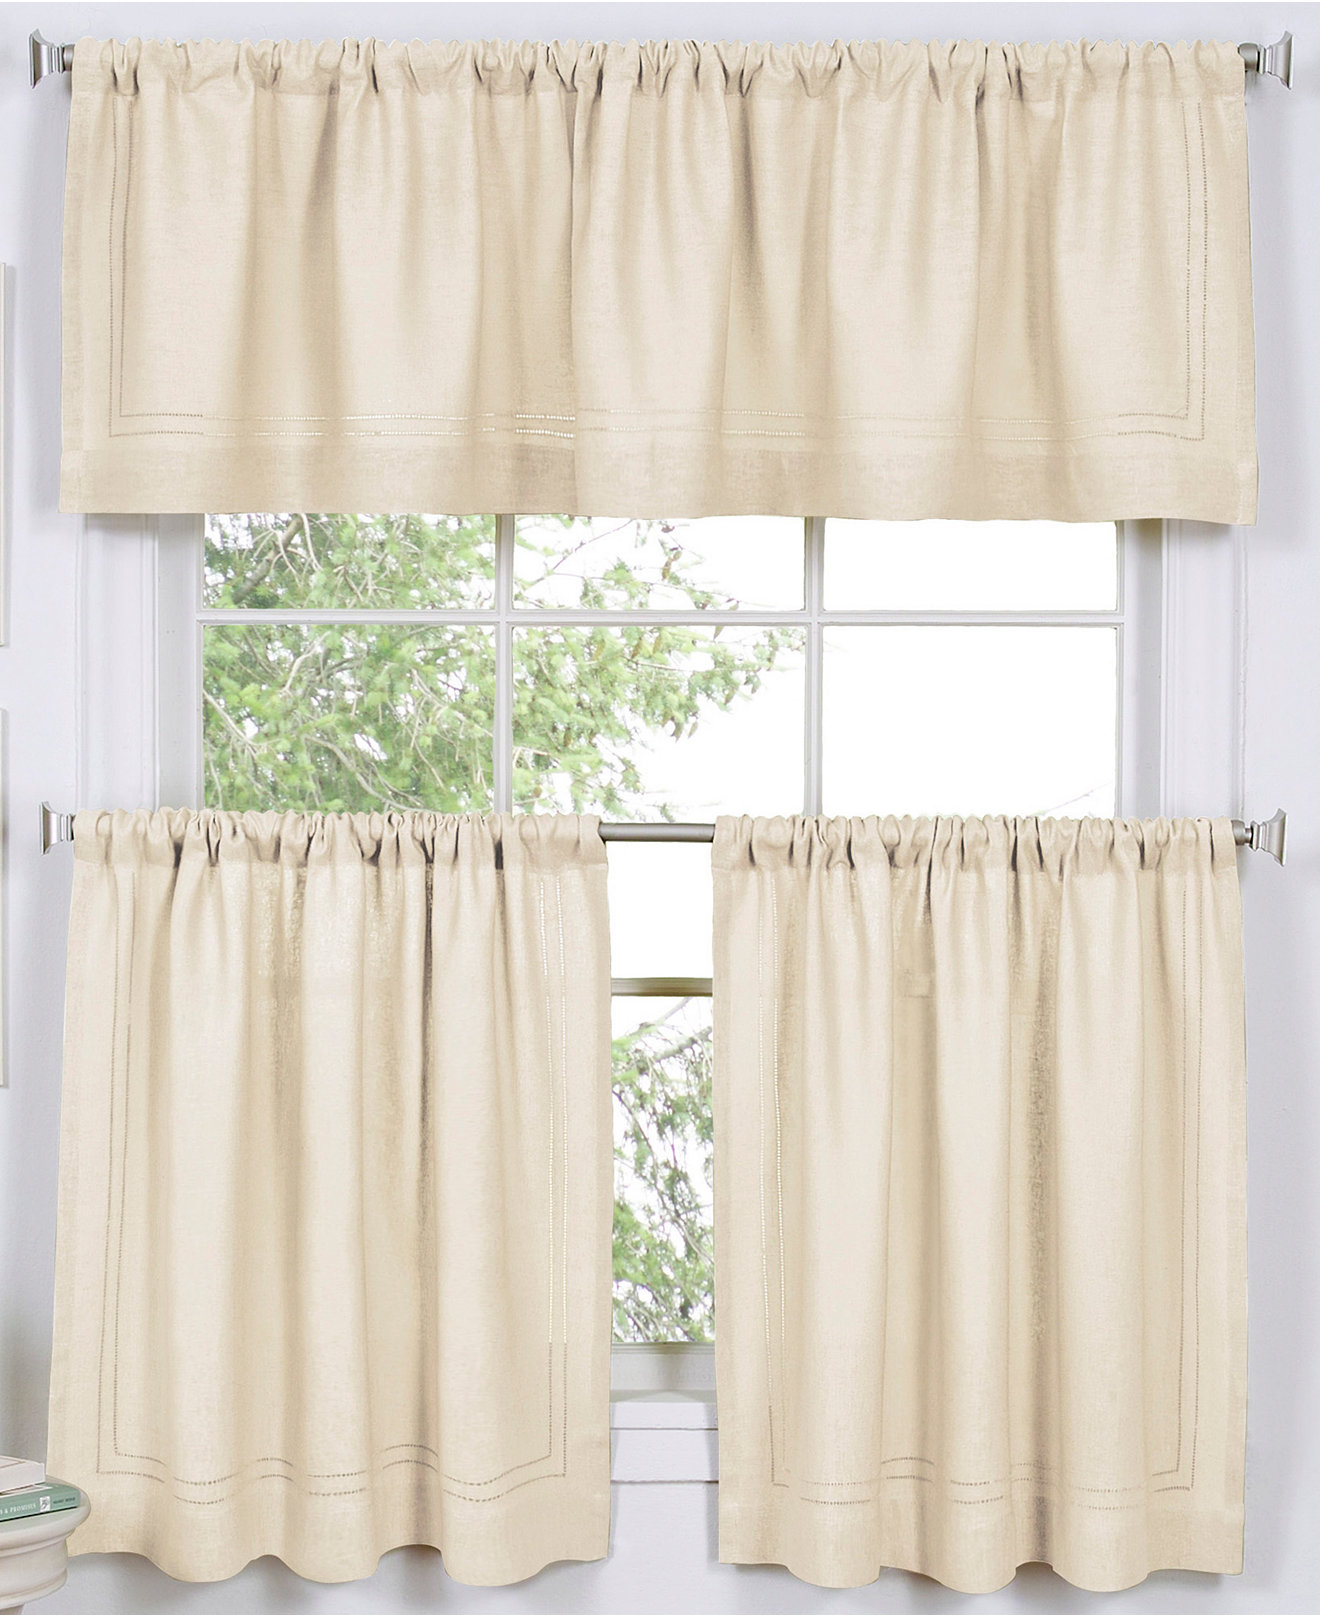 Macys Curtains For Living Room Elrene Cameron Cafe Curtain Collection Easy Care Linen Look